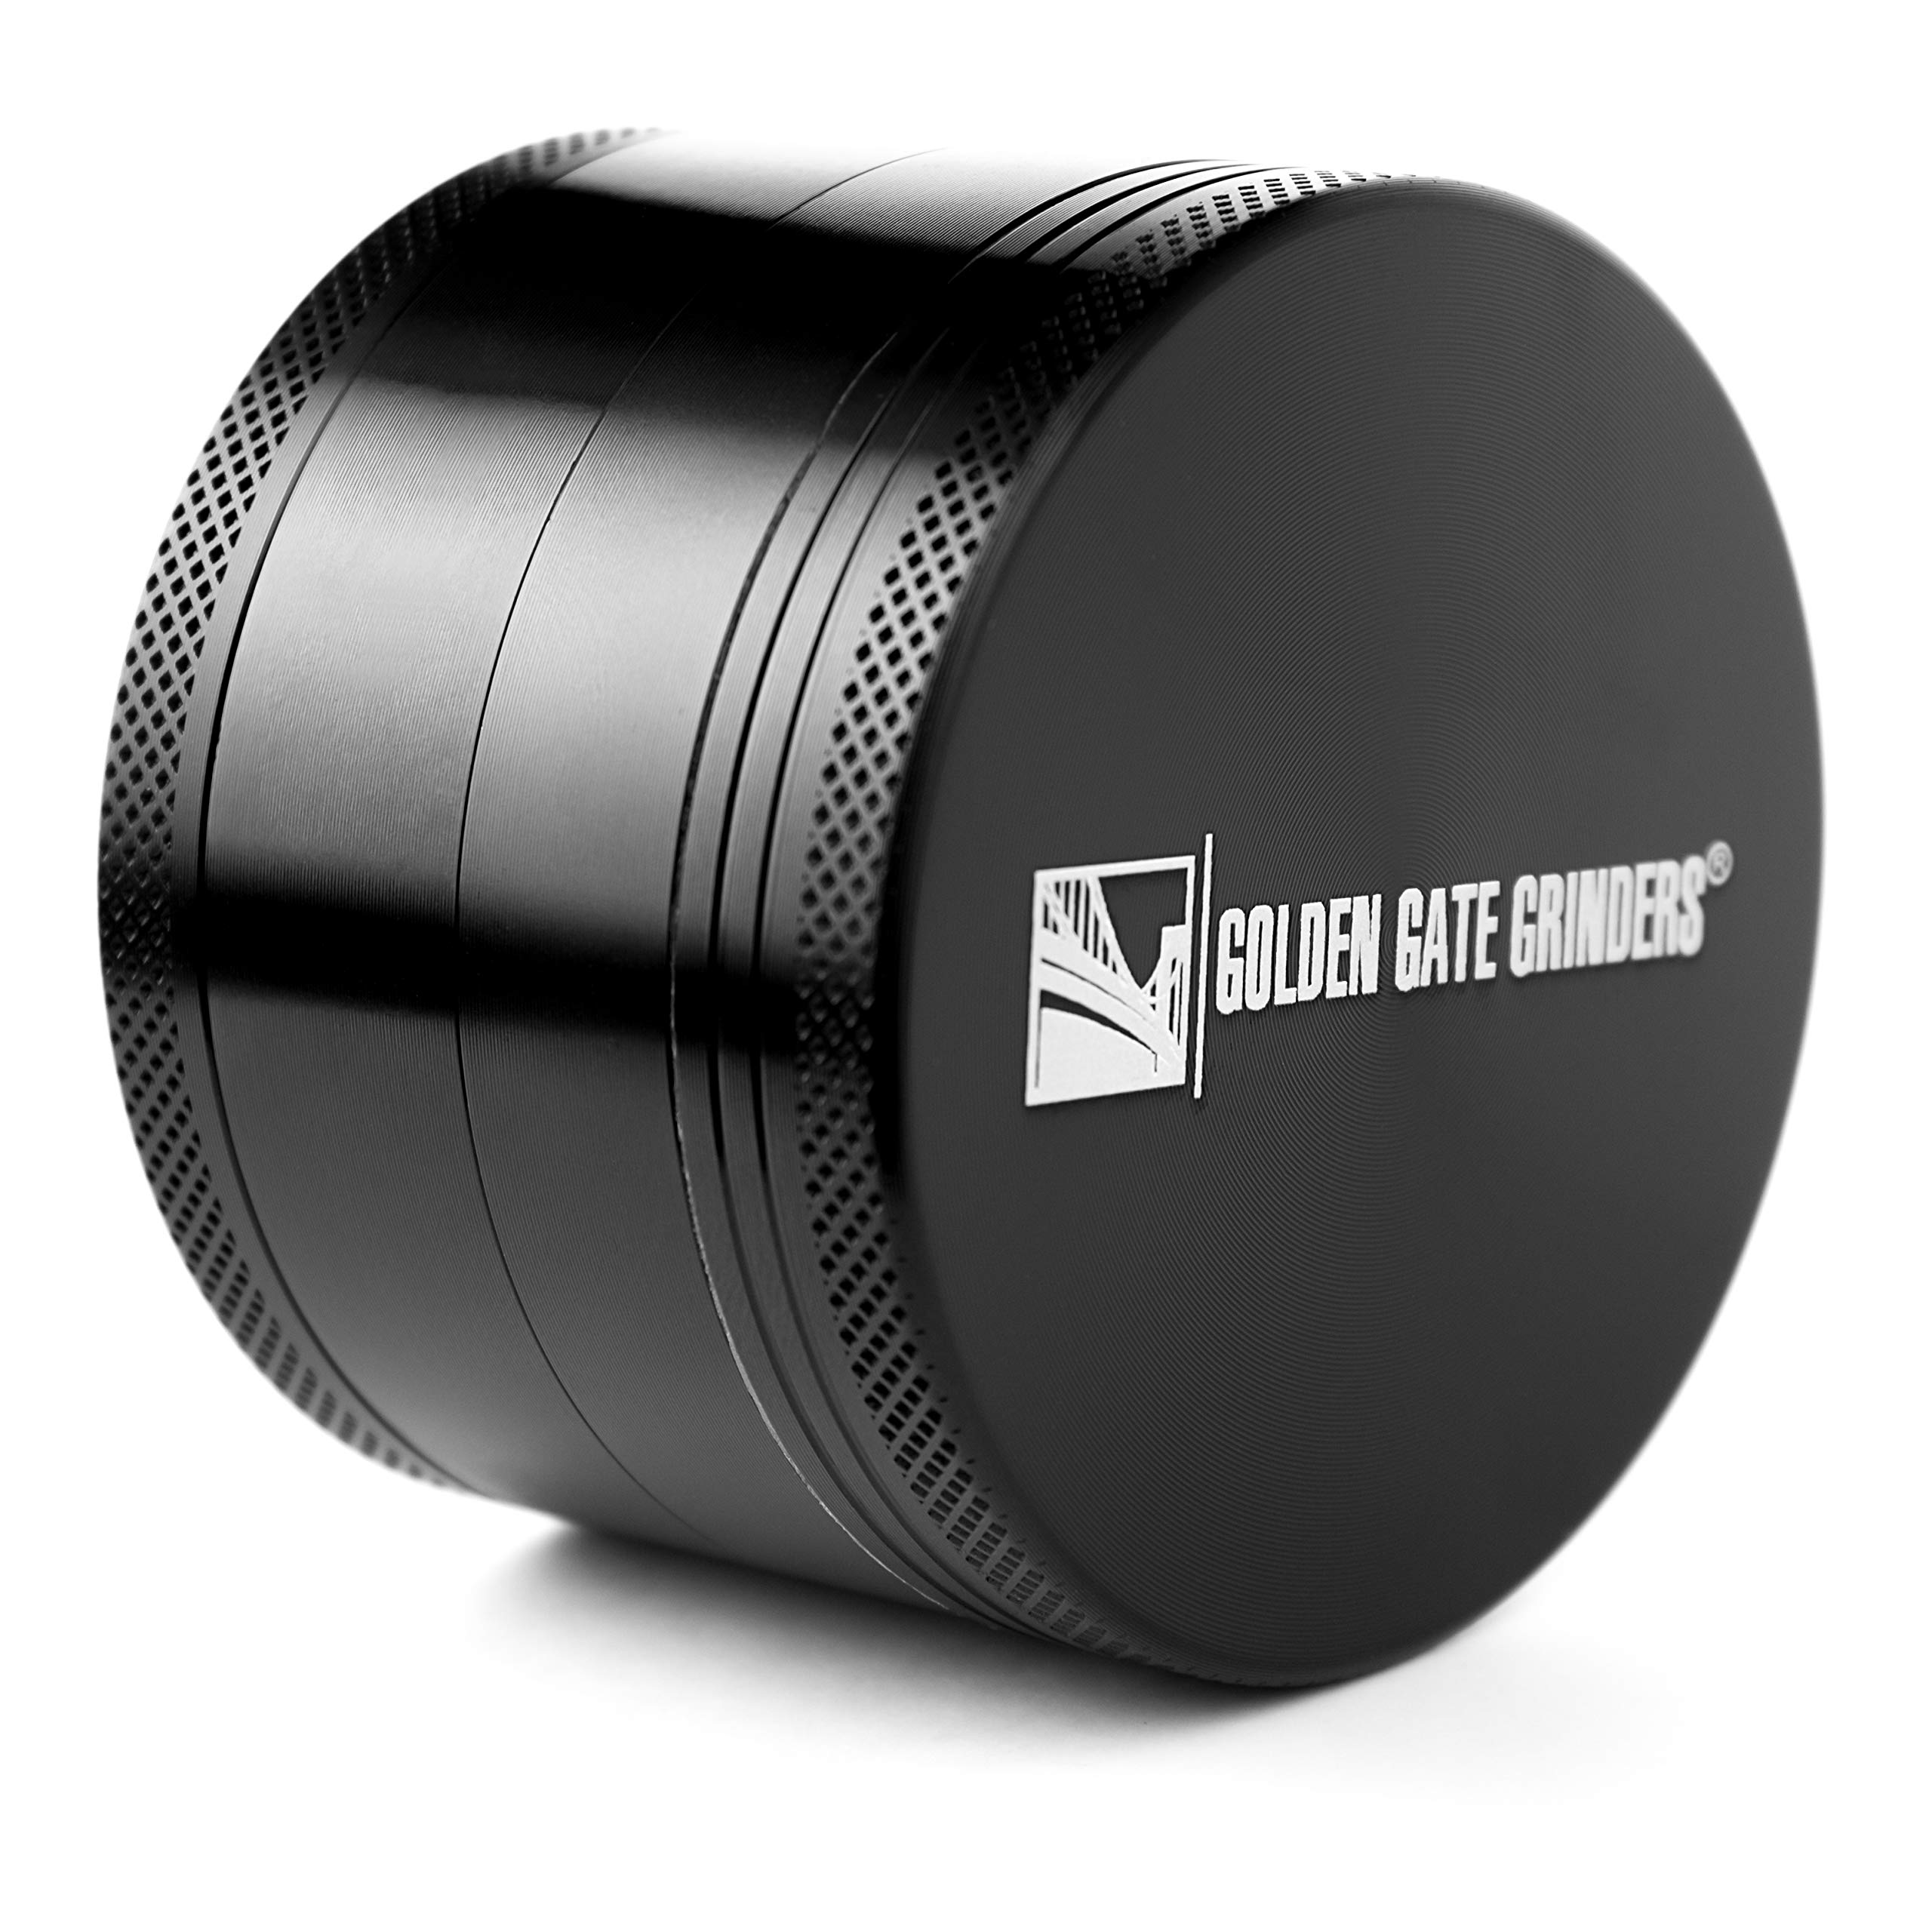 Golden Gate Grinders #1 Best Herb Grinder 2.5 Inch 4-piece Anodized Aluminum with Pollen Catcher - Large Black by Golden Gate Grinders